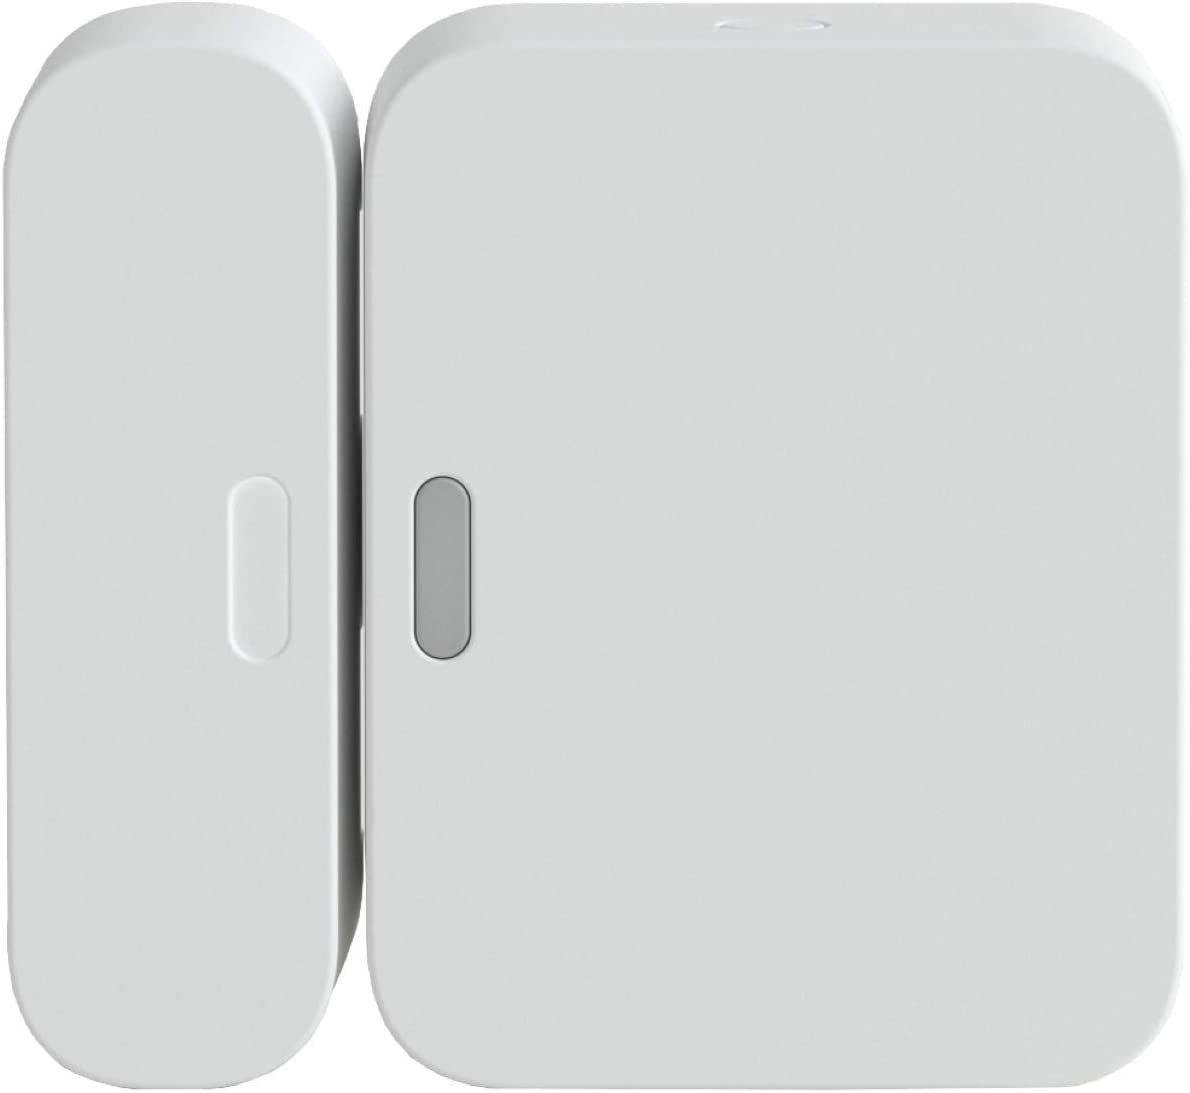 Entry Sensor - Window and Door Protection - Compatible with The SimpliSafe Home Security System (New Gen)